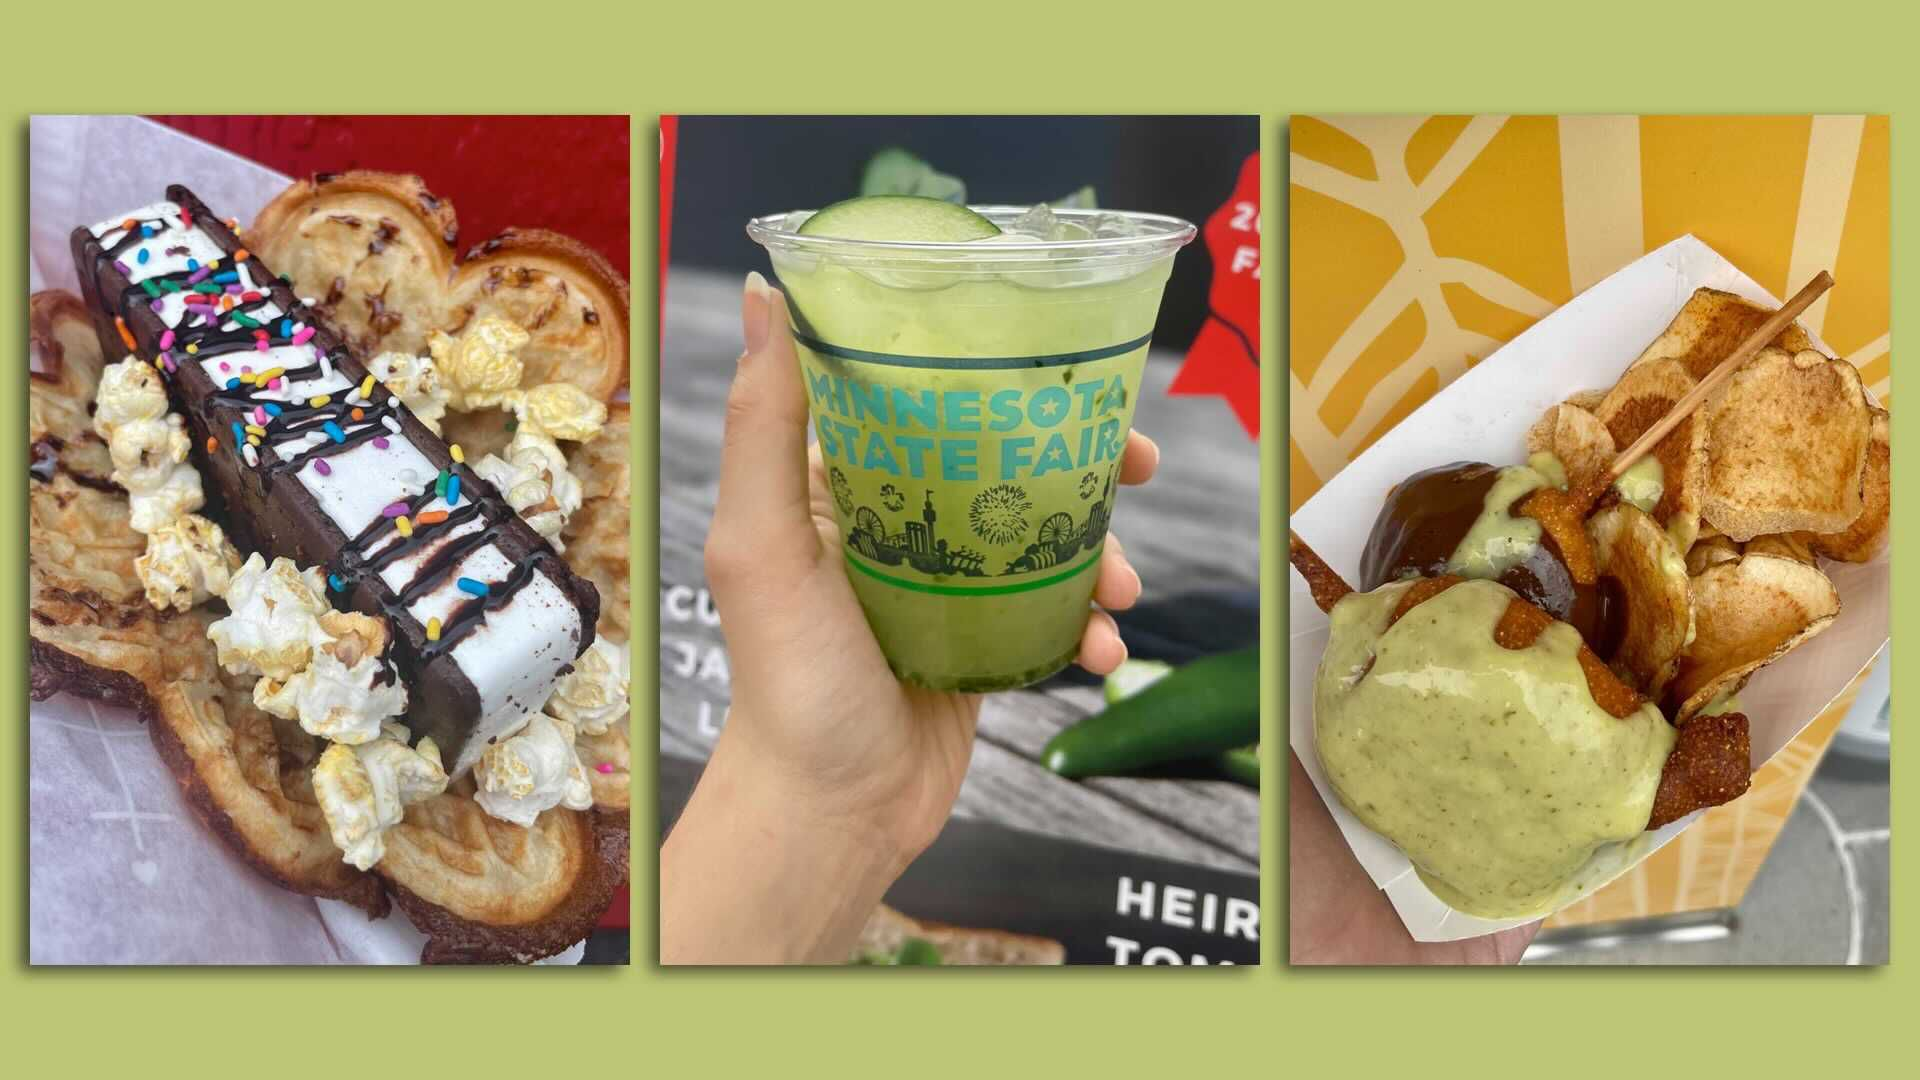 A photo of three foods at the Minnesota State Fair this year.